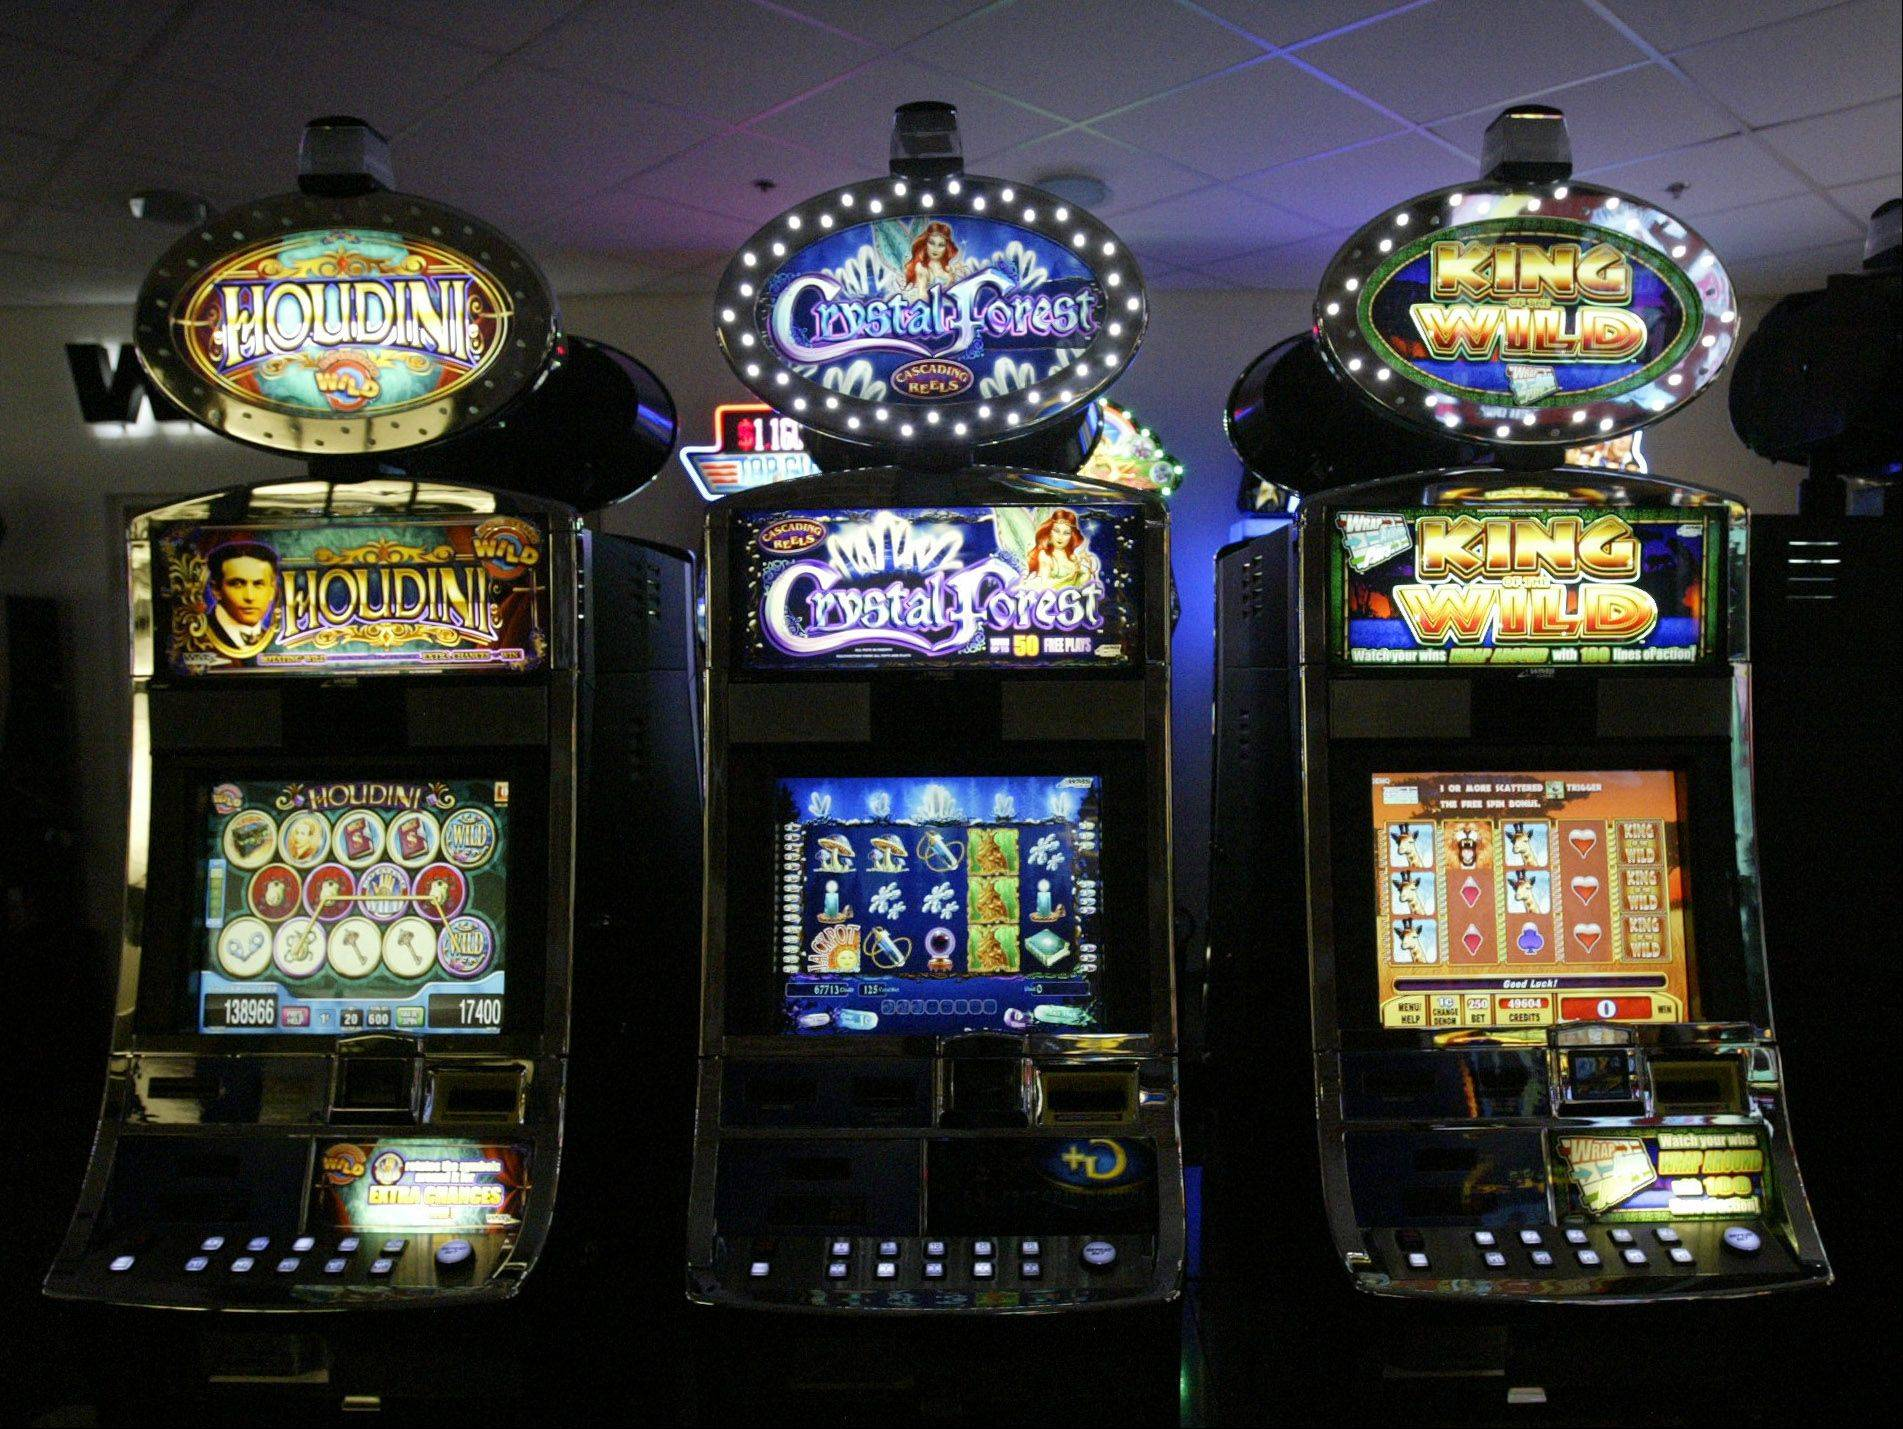 Dead-beat parents would lose gambling winnings